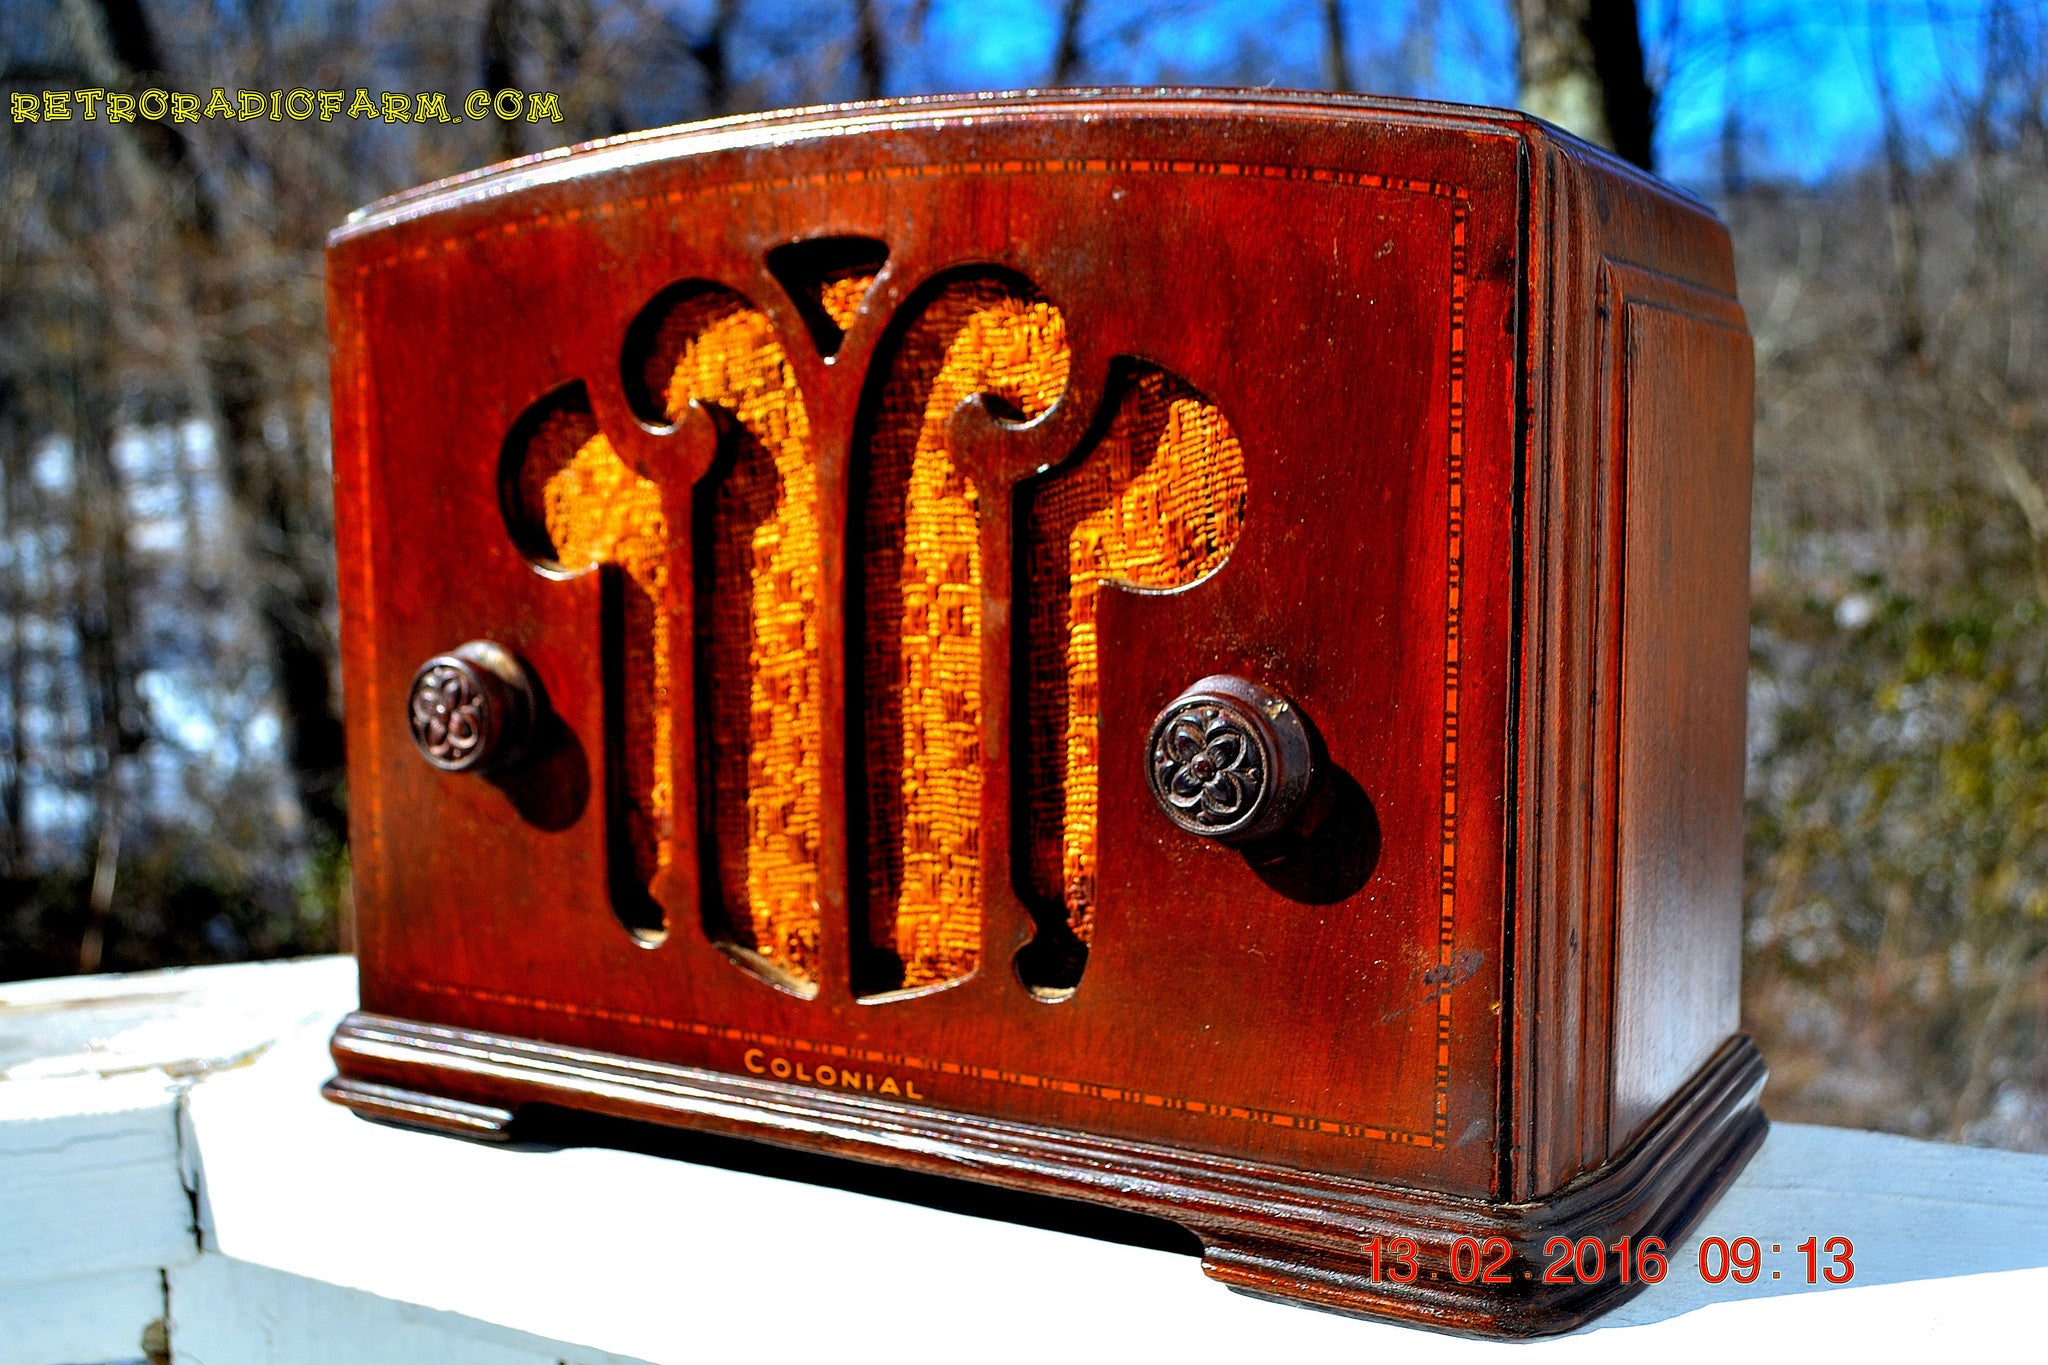 SOLD! - Apr 15, 2016 - BLUETOOTH MP3 READY - Mini Tombstone Wood Art Nouveau Retro 1935 Colonial AM Tube Radio Totally Restored! Wow! - [product_type} - Colonial - Retro Radio Farm